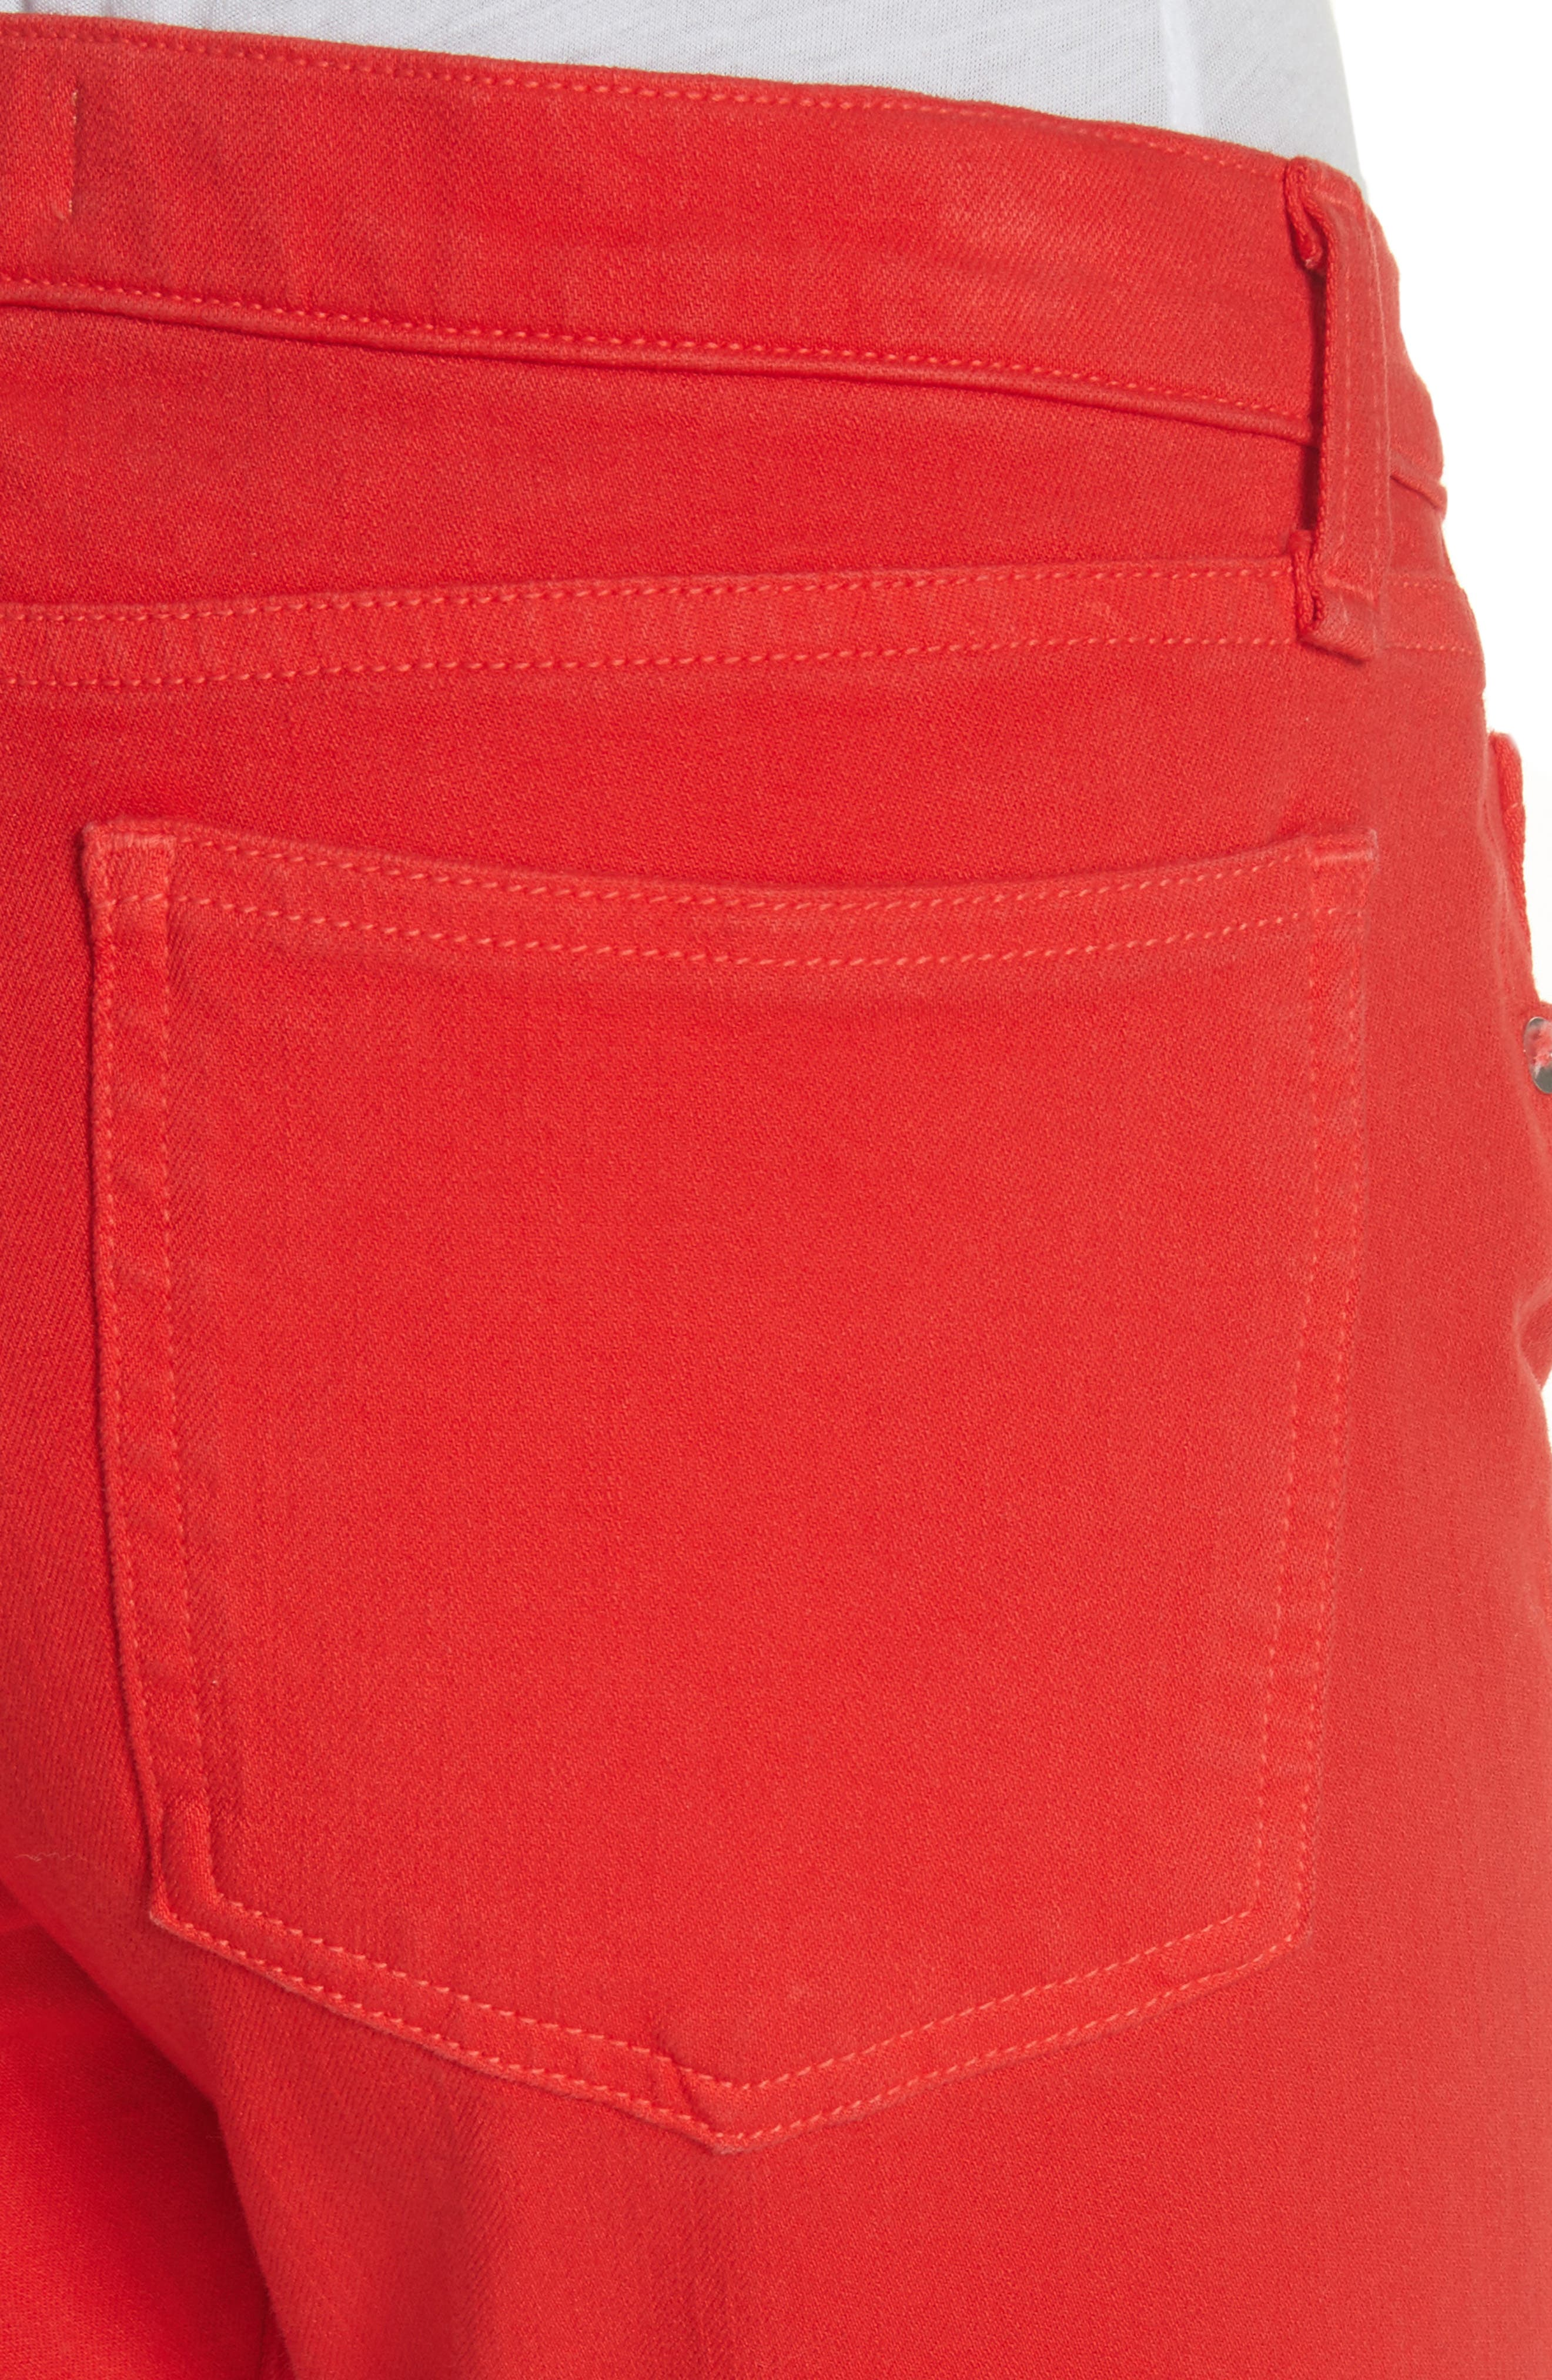 Brook Crop Skinny Jeans,                             Alternate thumbnail 4, color,                             Neon Red